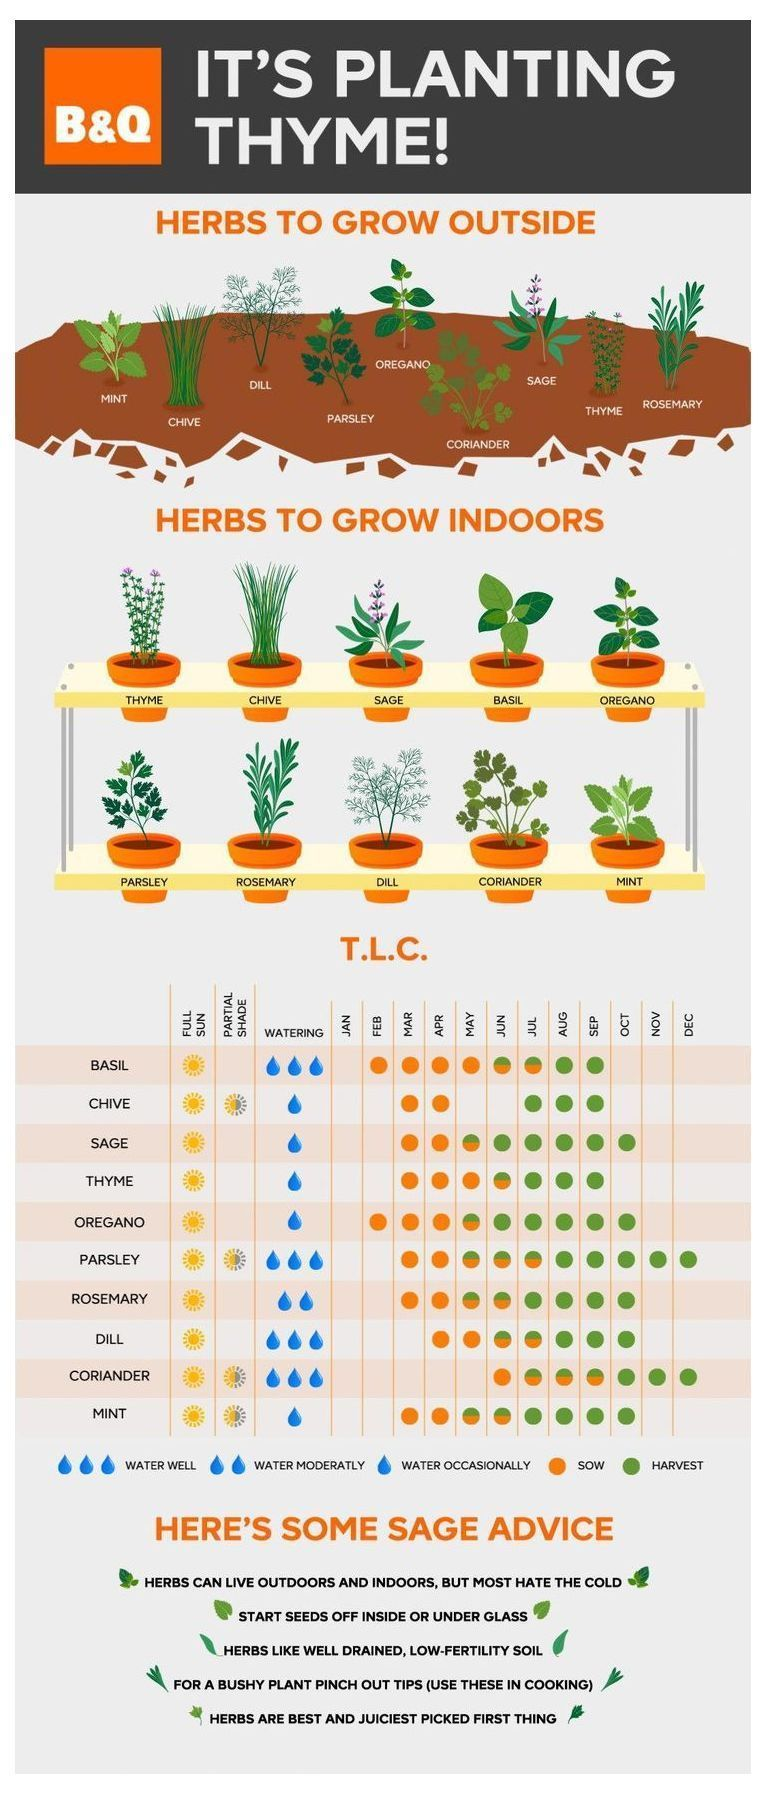 Create A Garden To Remember With This Useful Advice. | Herb Garden Indoor | Vertical Herb Gardens | Herb Planter Ideas | Companion Planting Herbs In Pots. #growyourownfood #nochemicals #vegetablegardening #herbs garden